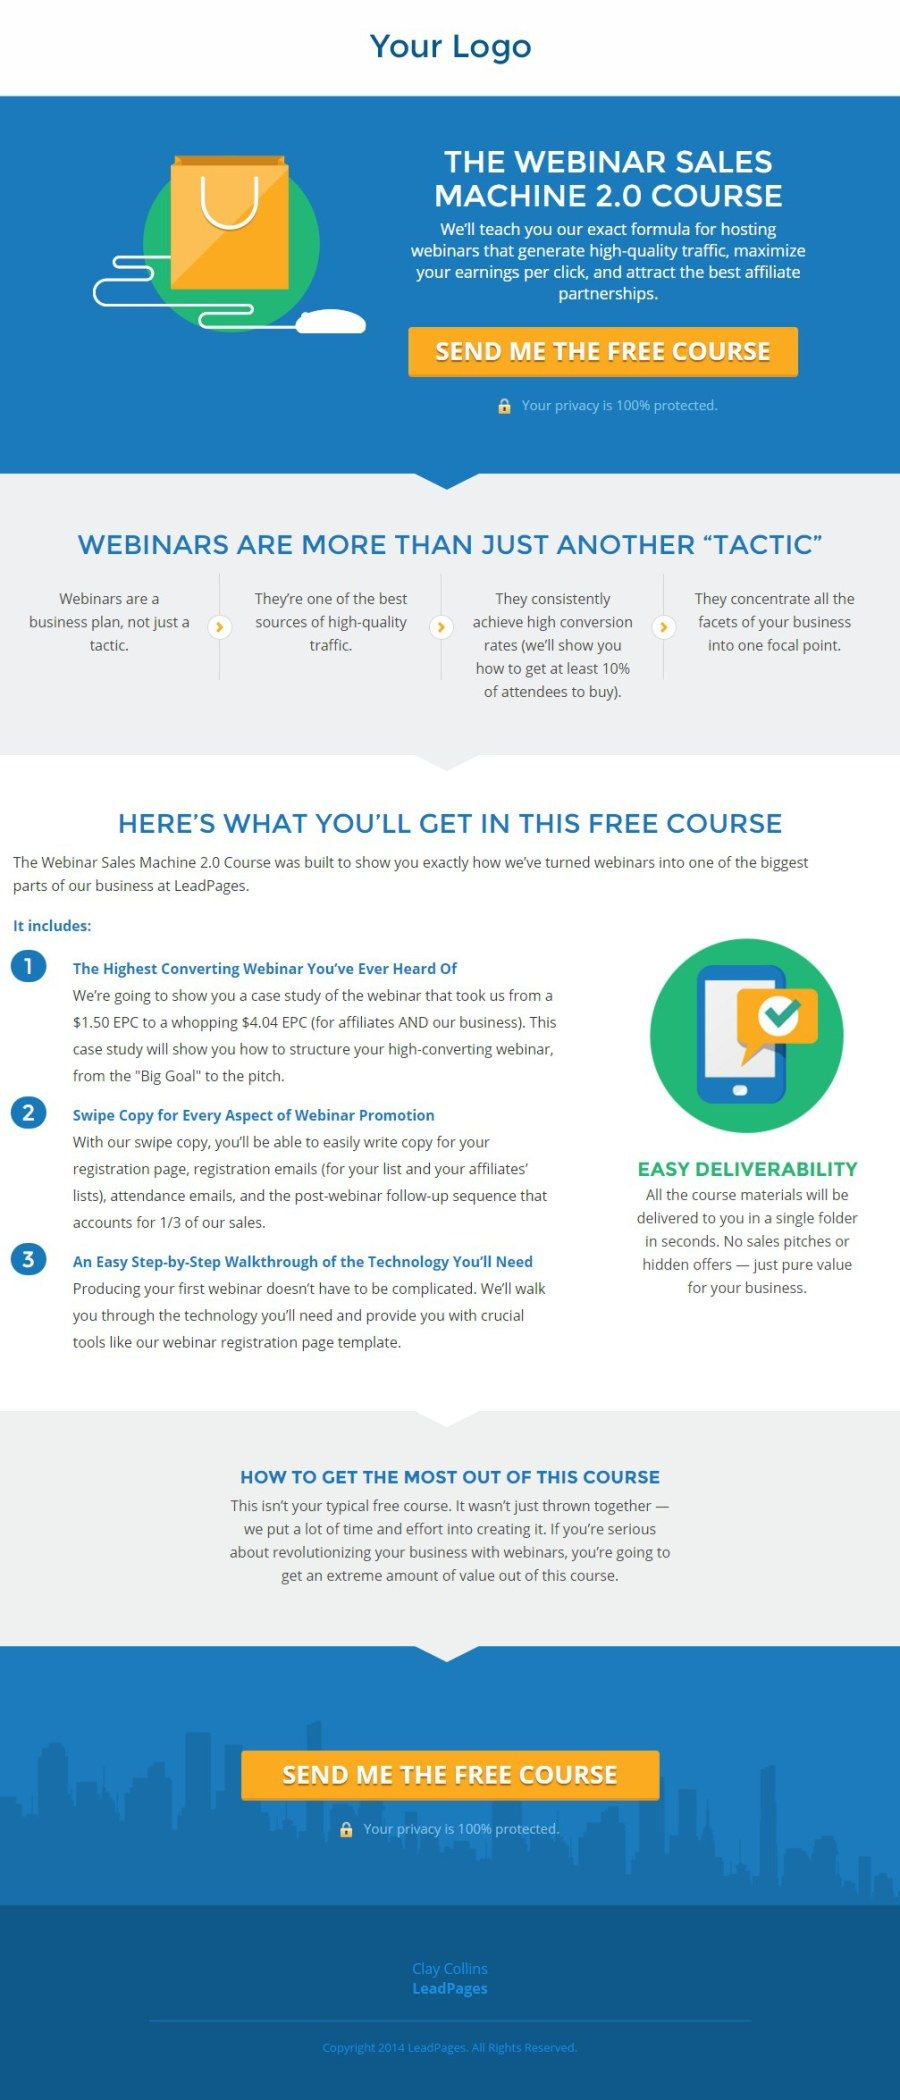 White Paper Landing Page Free Template – Free White Paper Templates